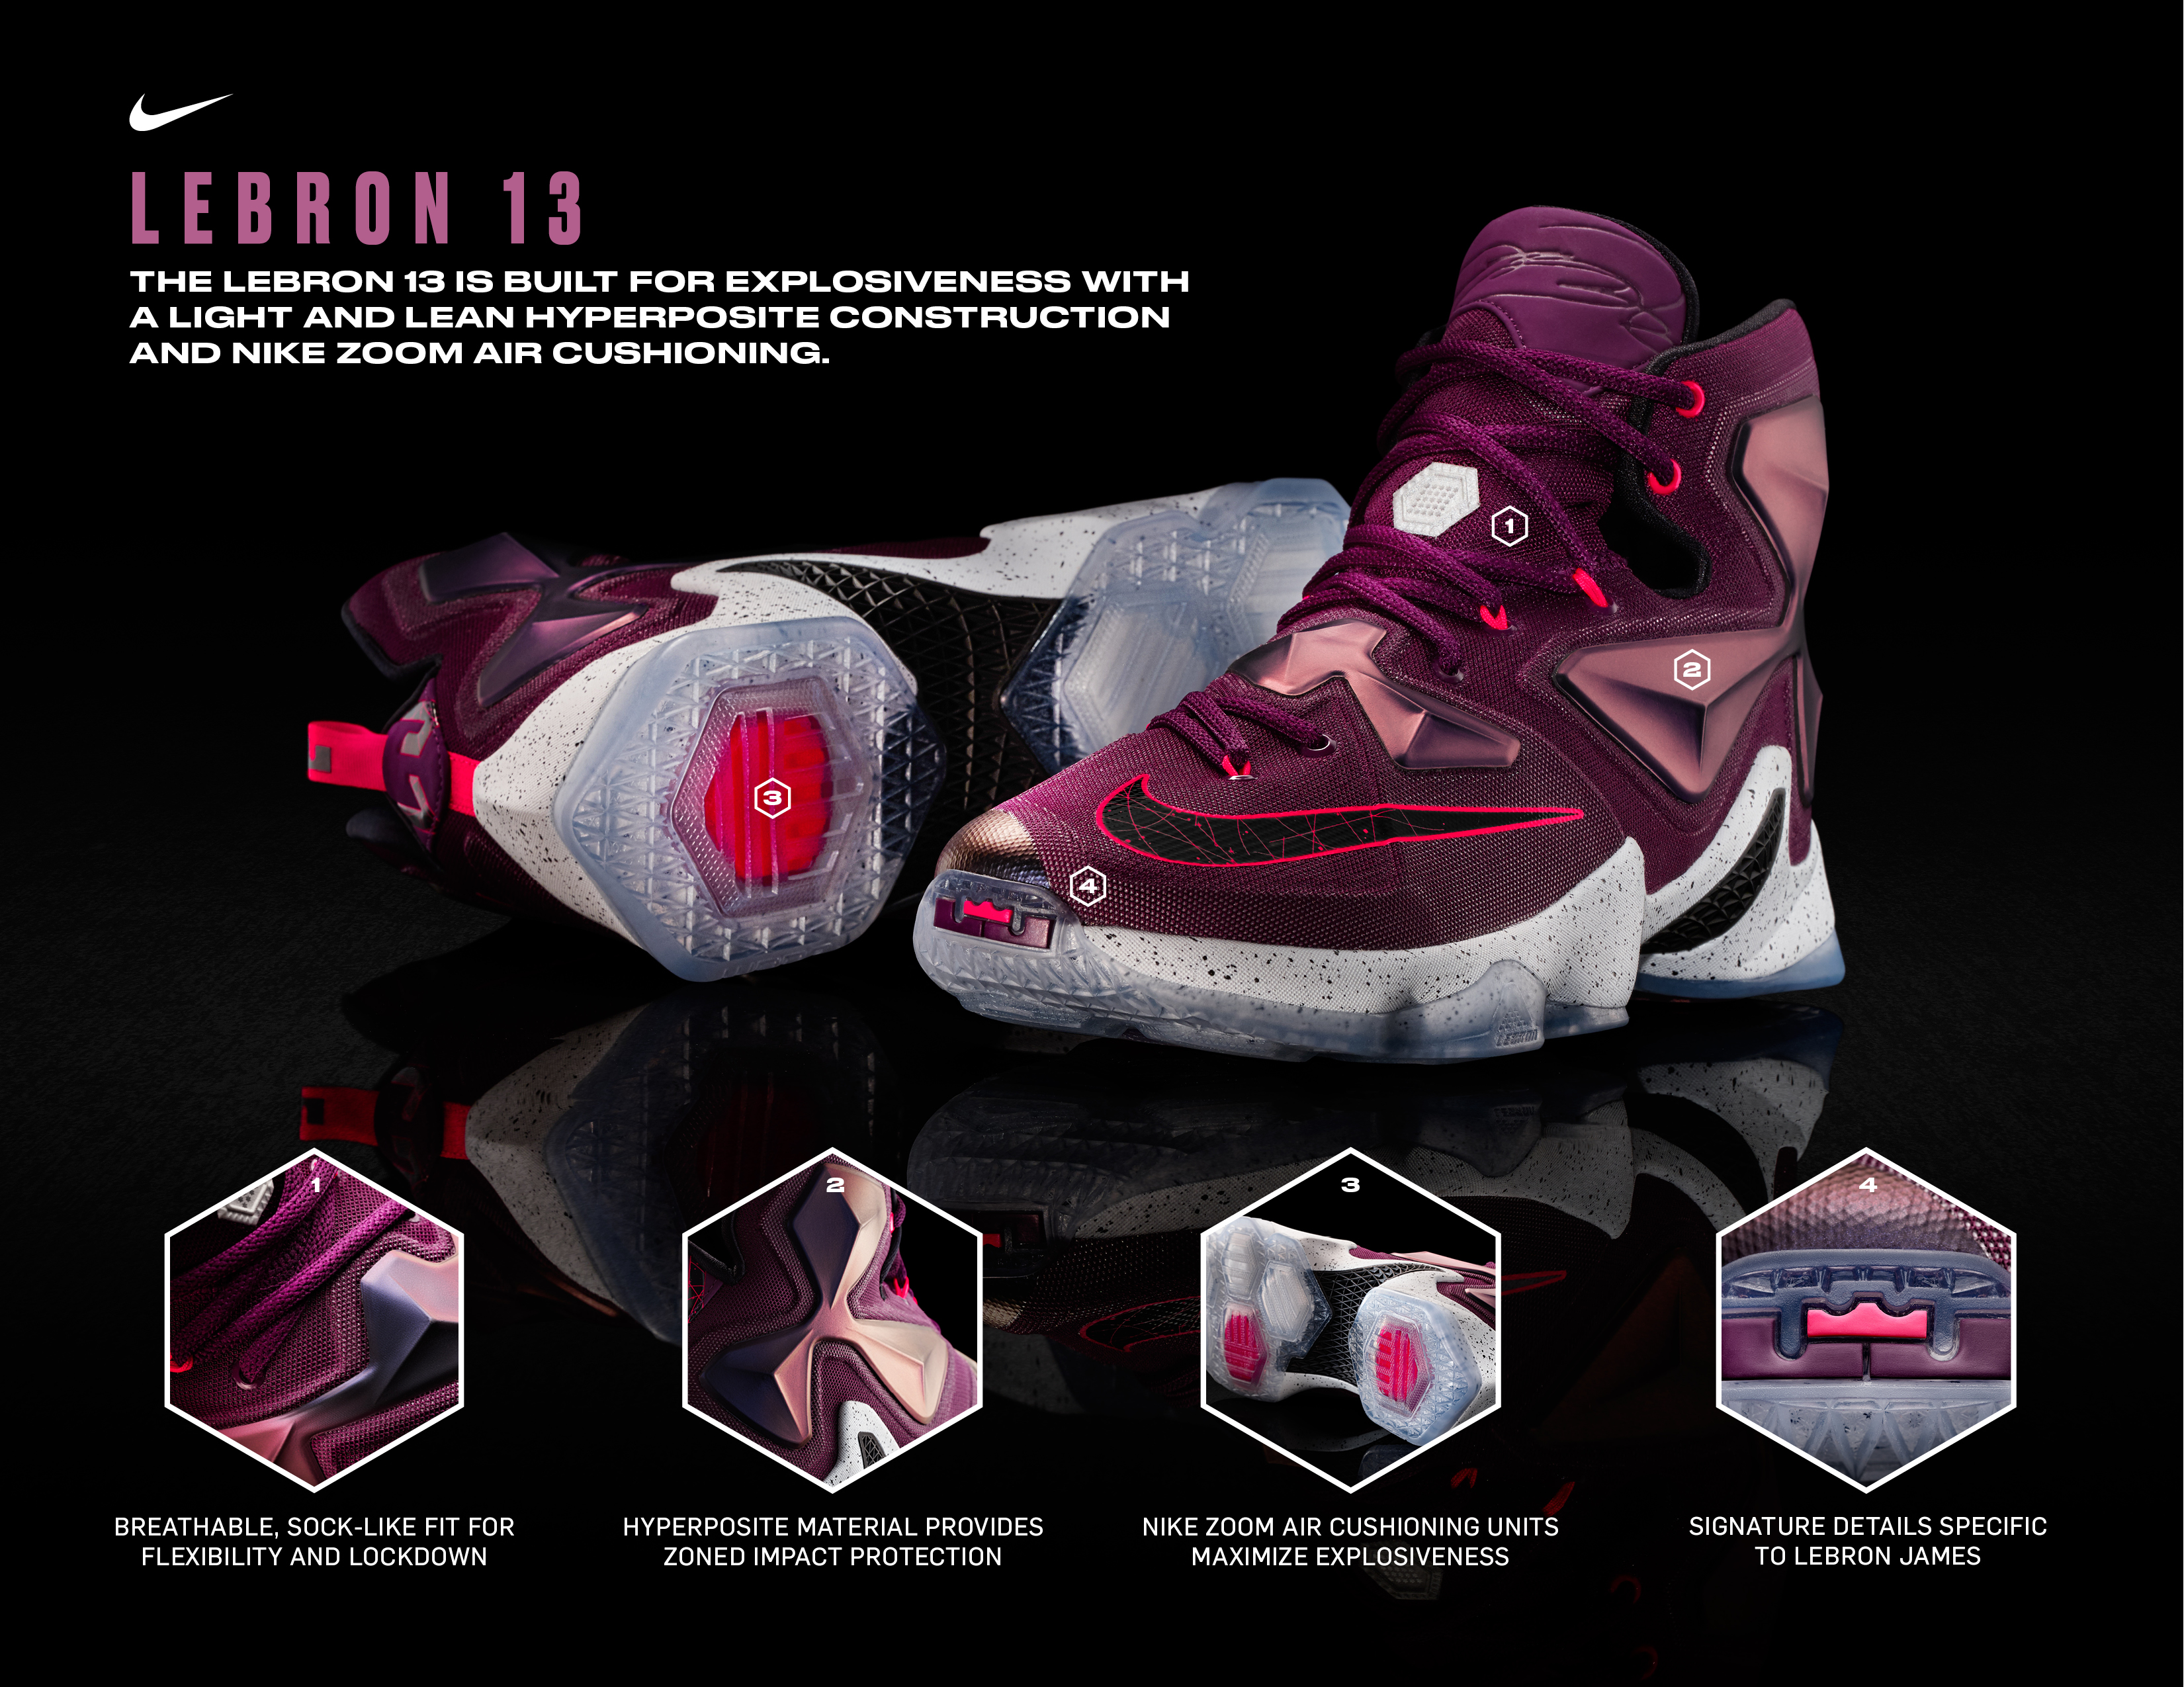 newest lebrons out high sock football boots